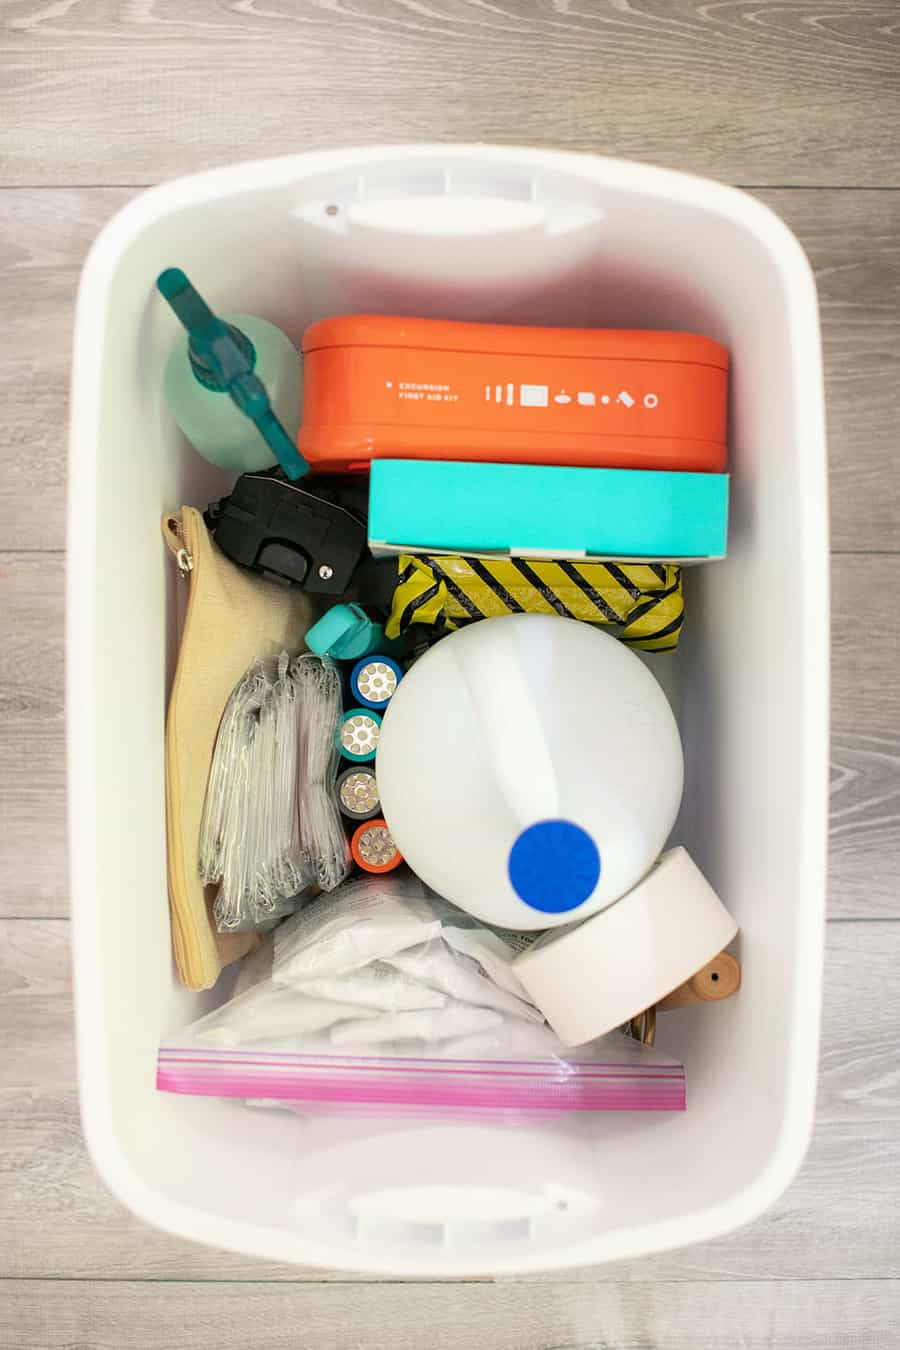 Emergency kit bucket filled with bleach, spray bottle, flashlights and more items.